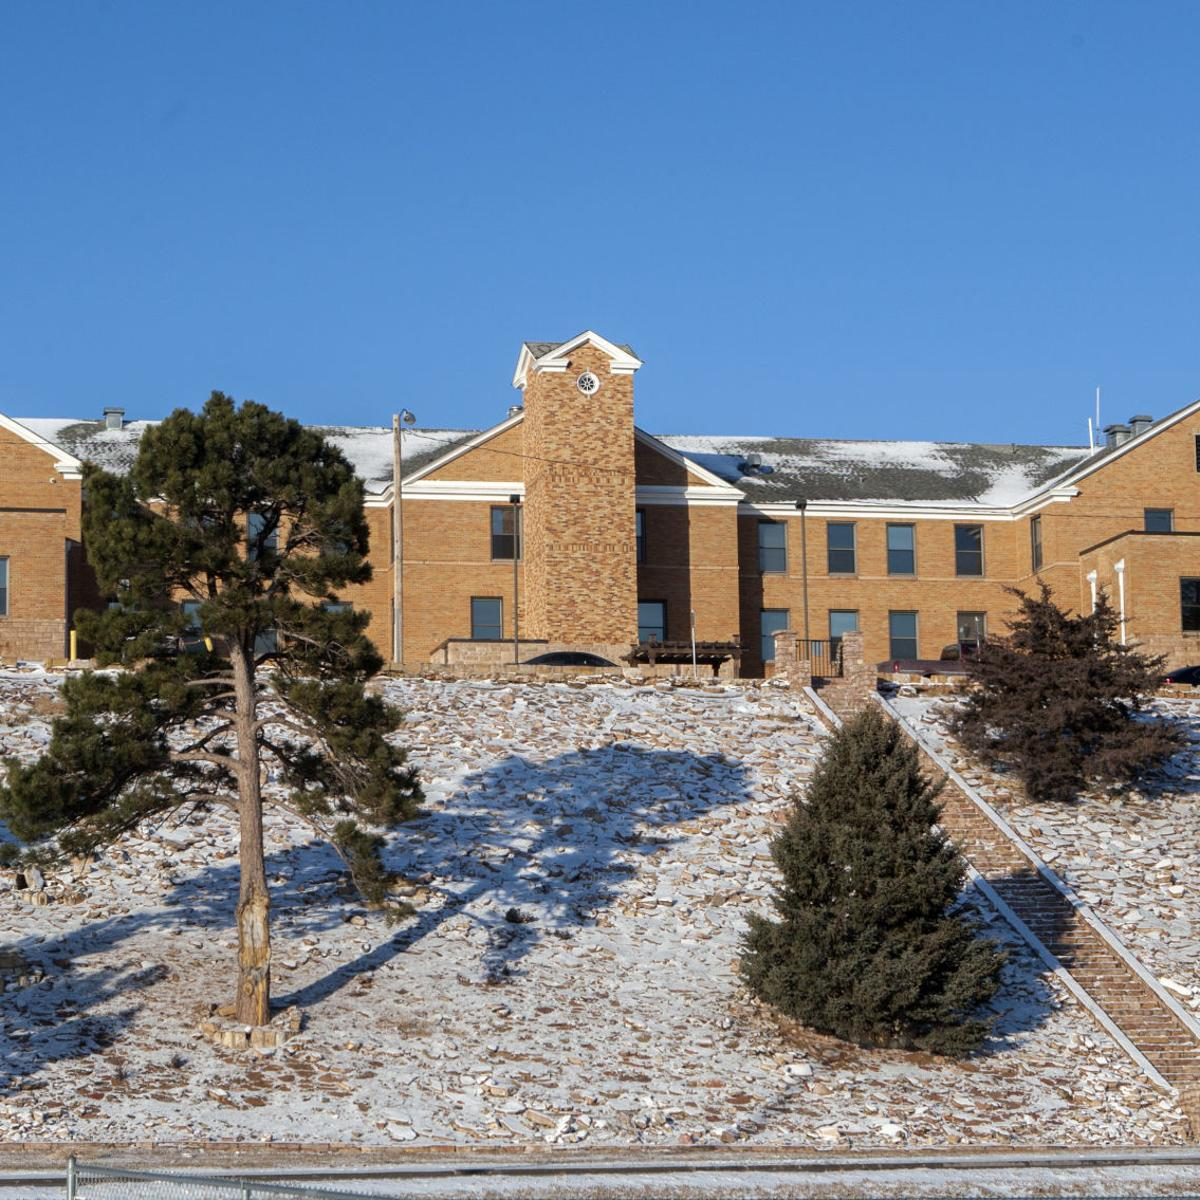 Tribes want control of Sioux San Hospital in Rapid City